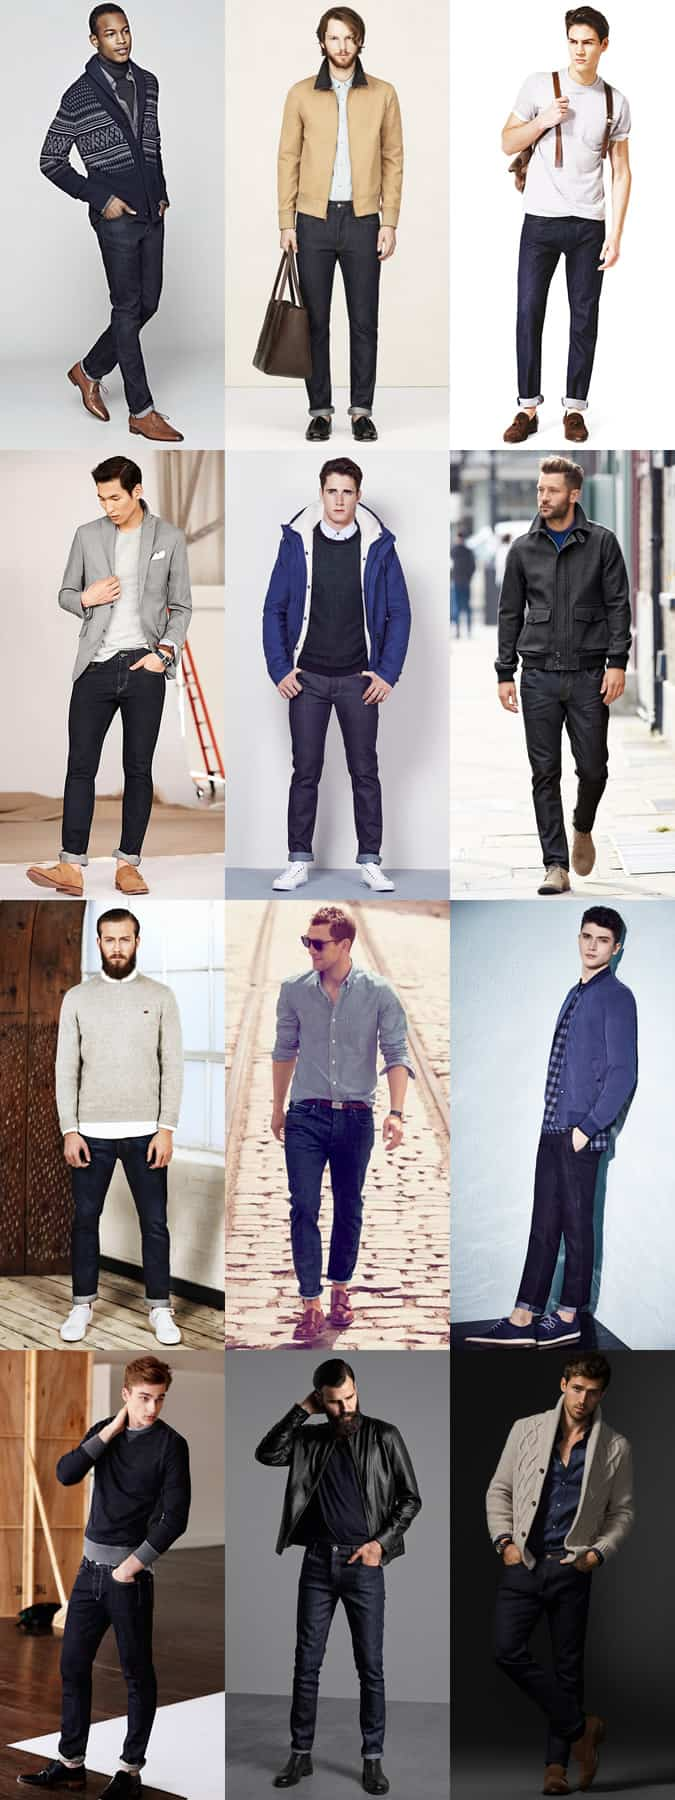 Men's Straight/Slim-Fit Minimal Dark Wash Jeans - Casual and Smart-Casual Outfit Inspiration Lookbook